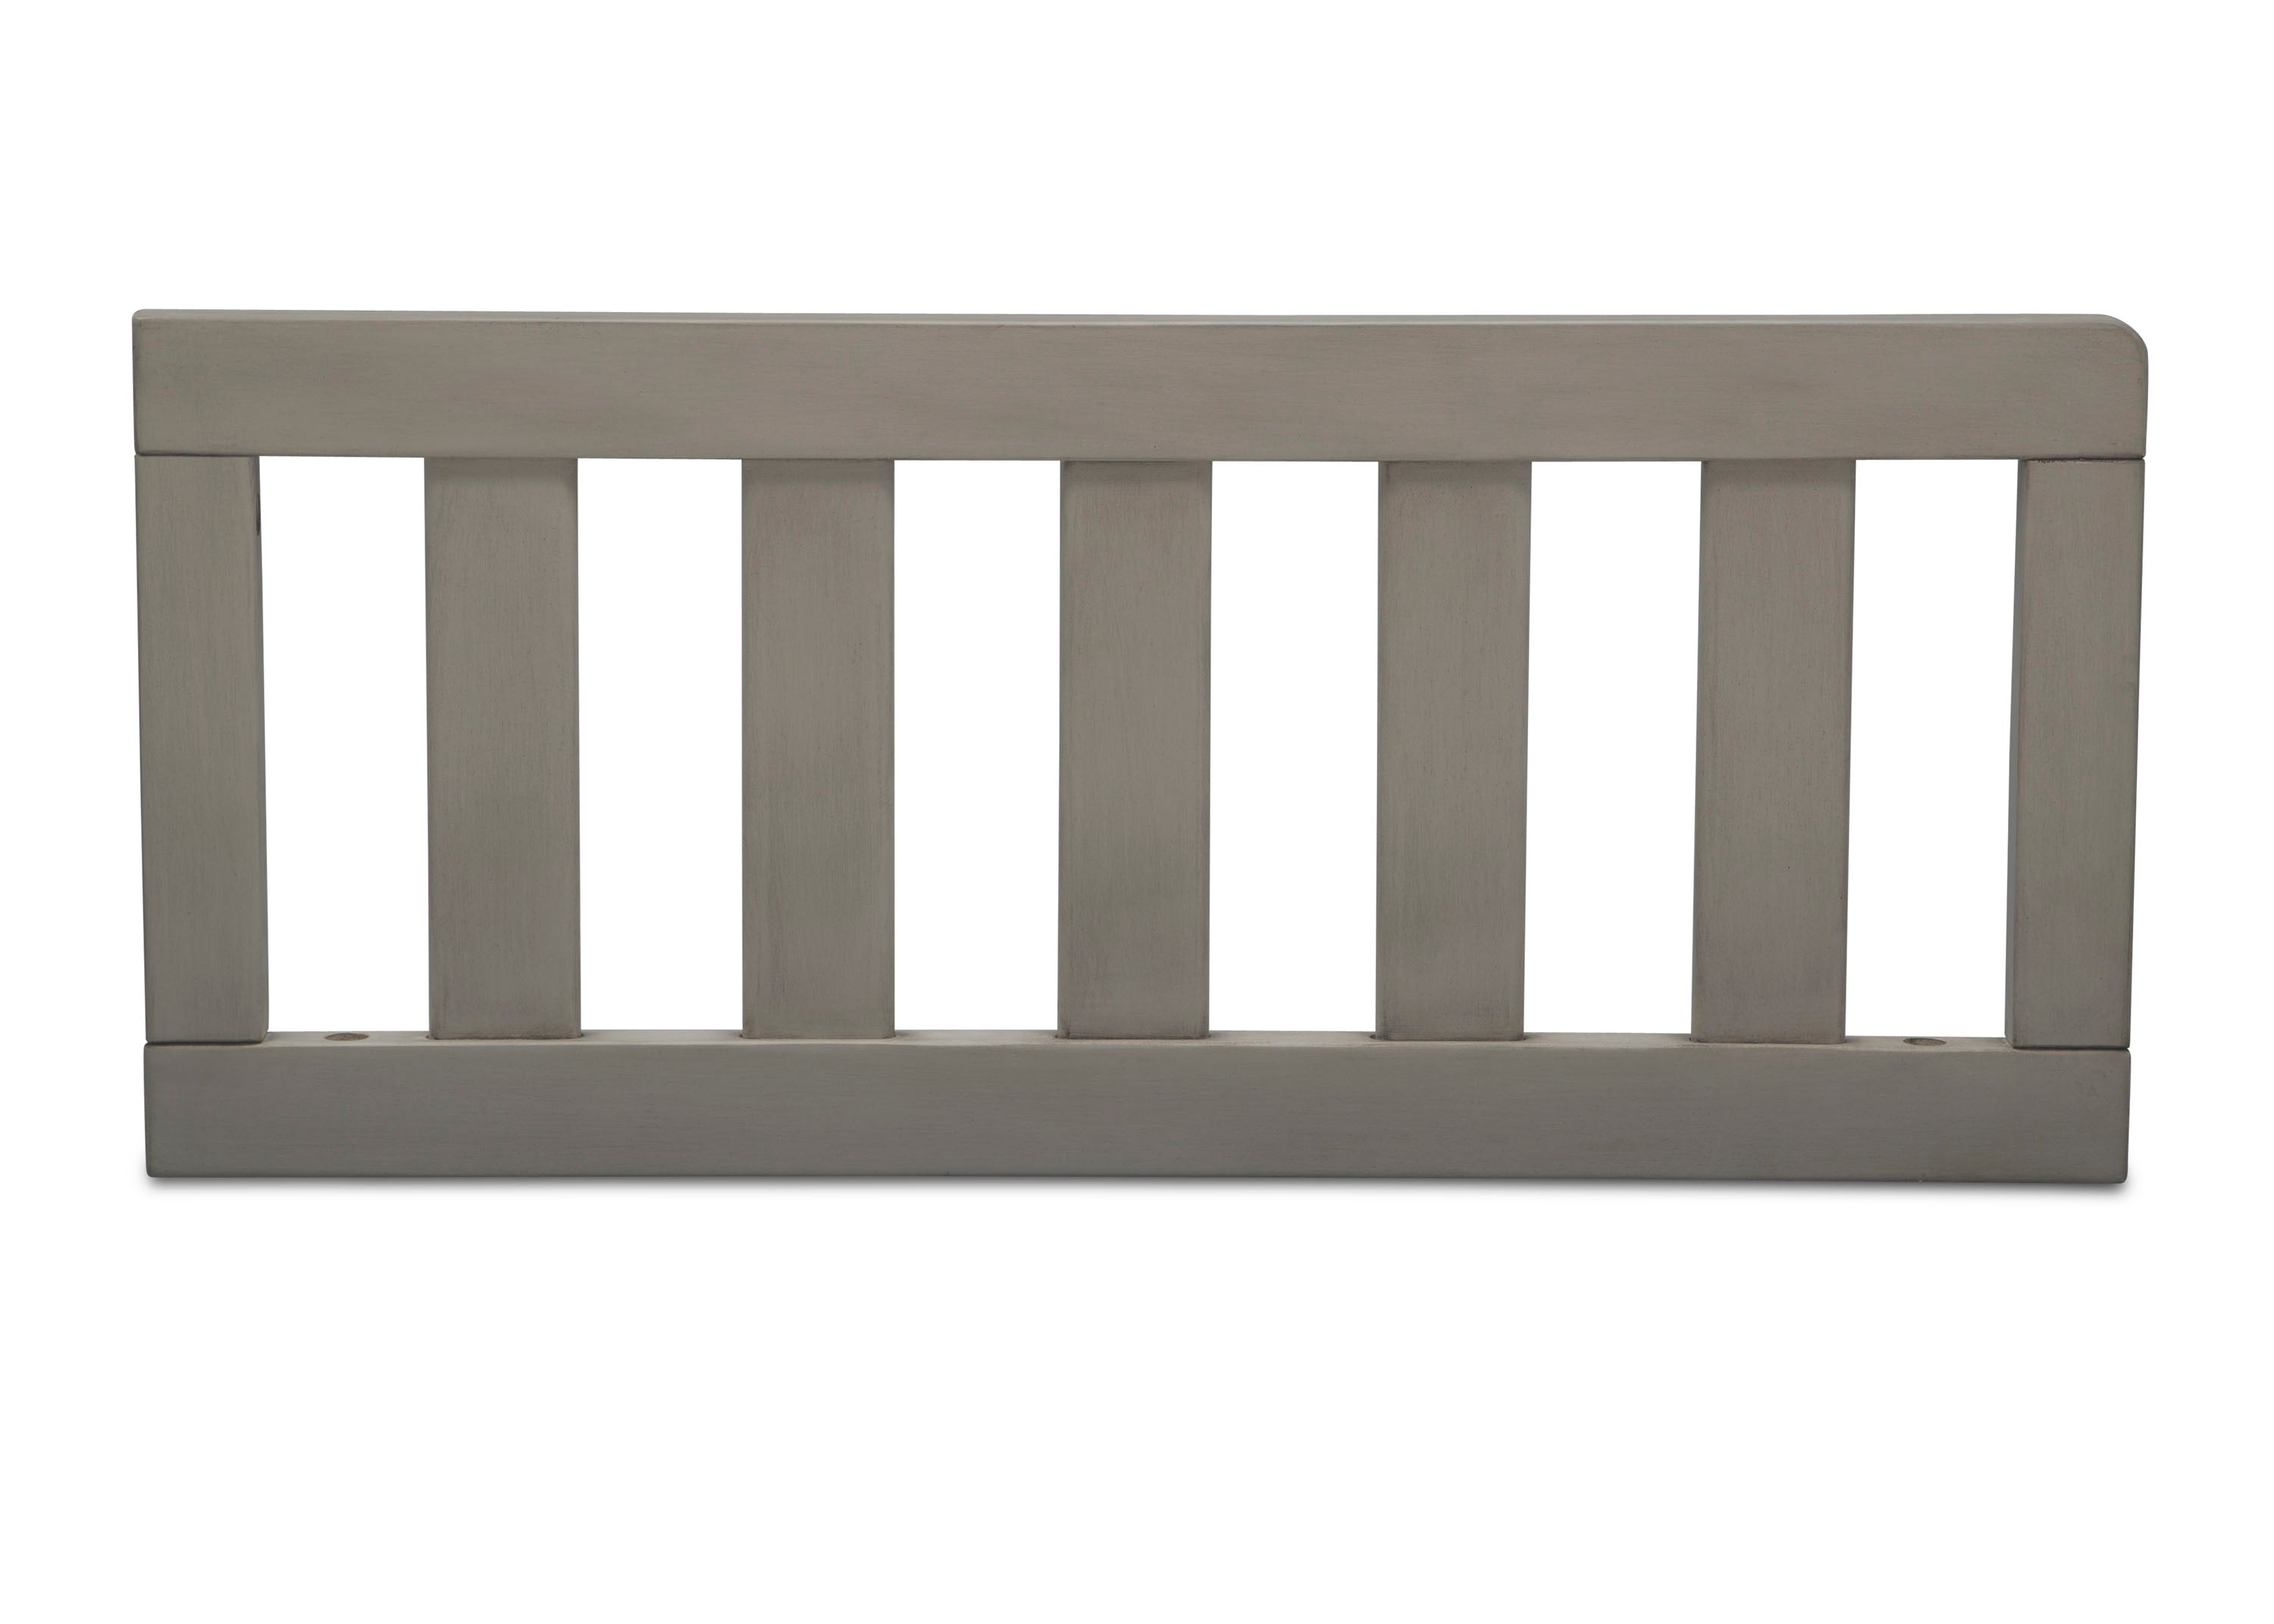 Delta Children Storm (161) Toddler Guardrail (180130) Front Silo, b1b Bedroom 4-in-1 Convertible Crib